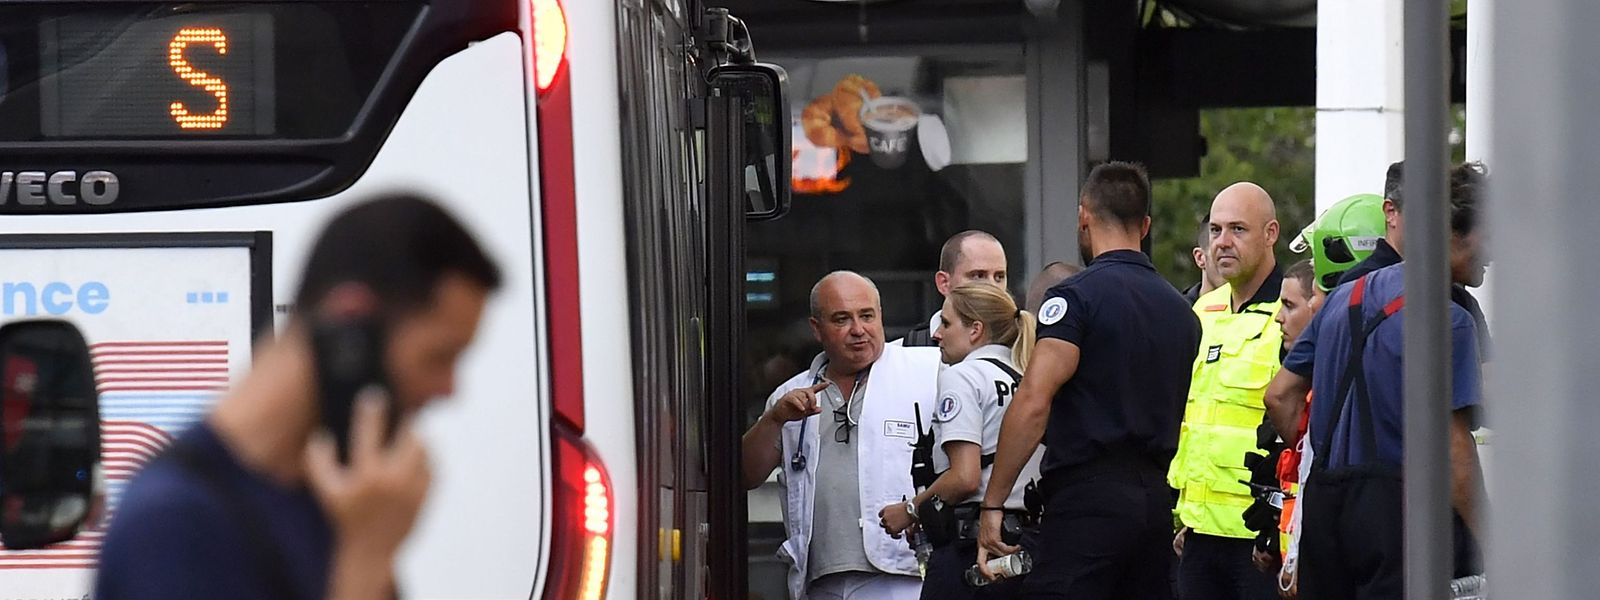 Emergency services are at work near a bus in Villeurbanne on the outskirts of Lyon, south-eastern France on August 31, 2019, after a knife attack which has left one dead and six injured. - Two men, one armed with a knife and the other with a skewer, carried out the attack in Villeurbanne in southeastern France, the official said, without giving further details on the motive for the stabbing. (Photo by PHILIPPE DESMAZES / AFP)